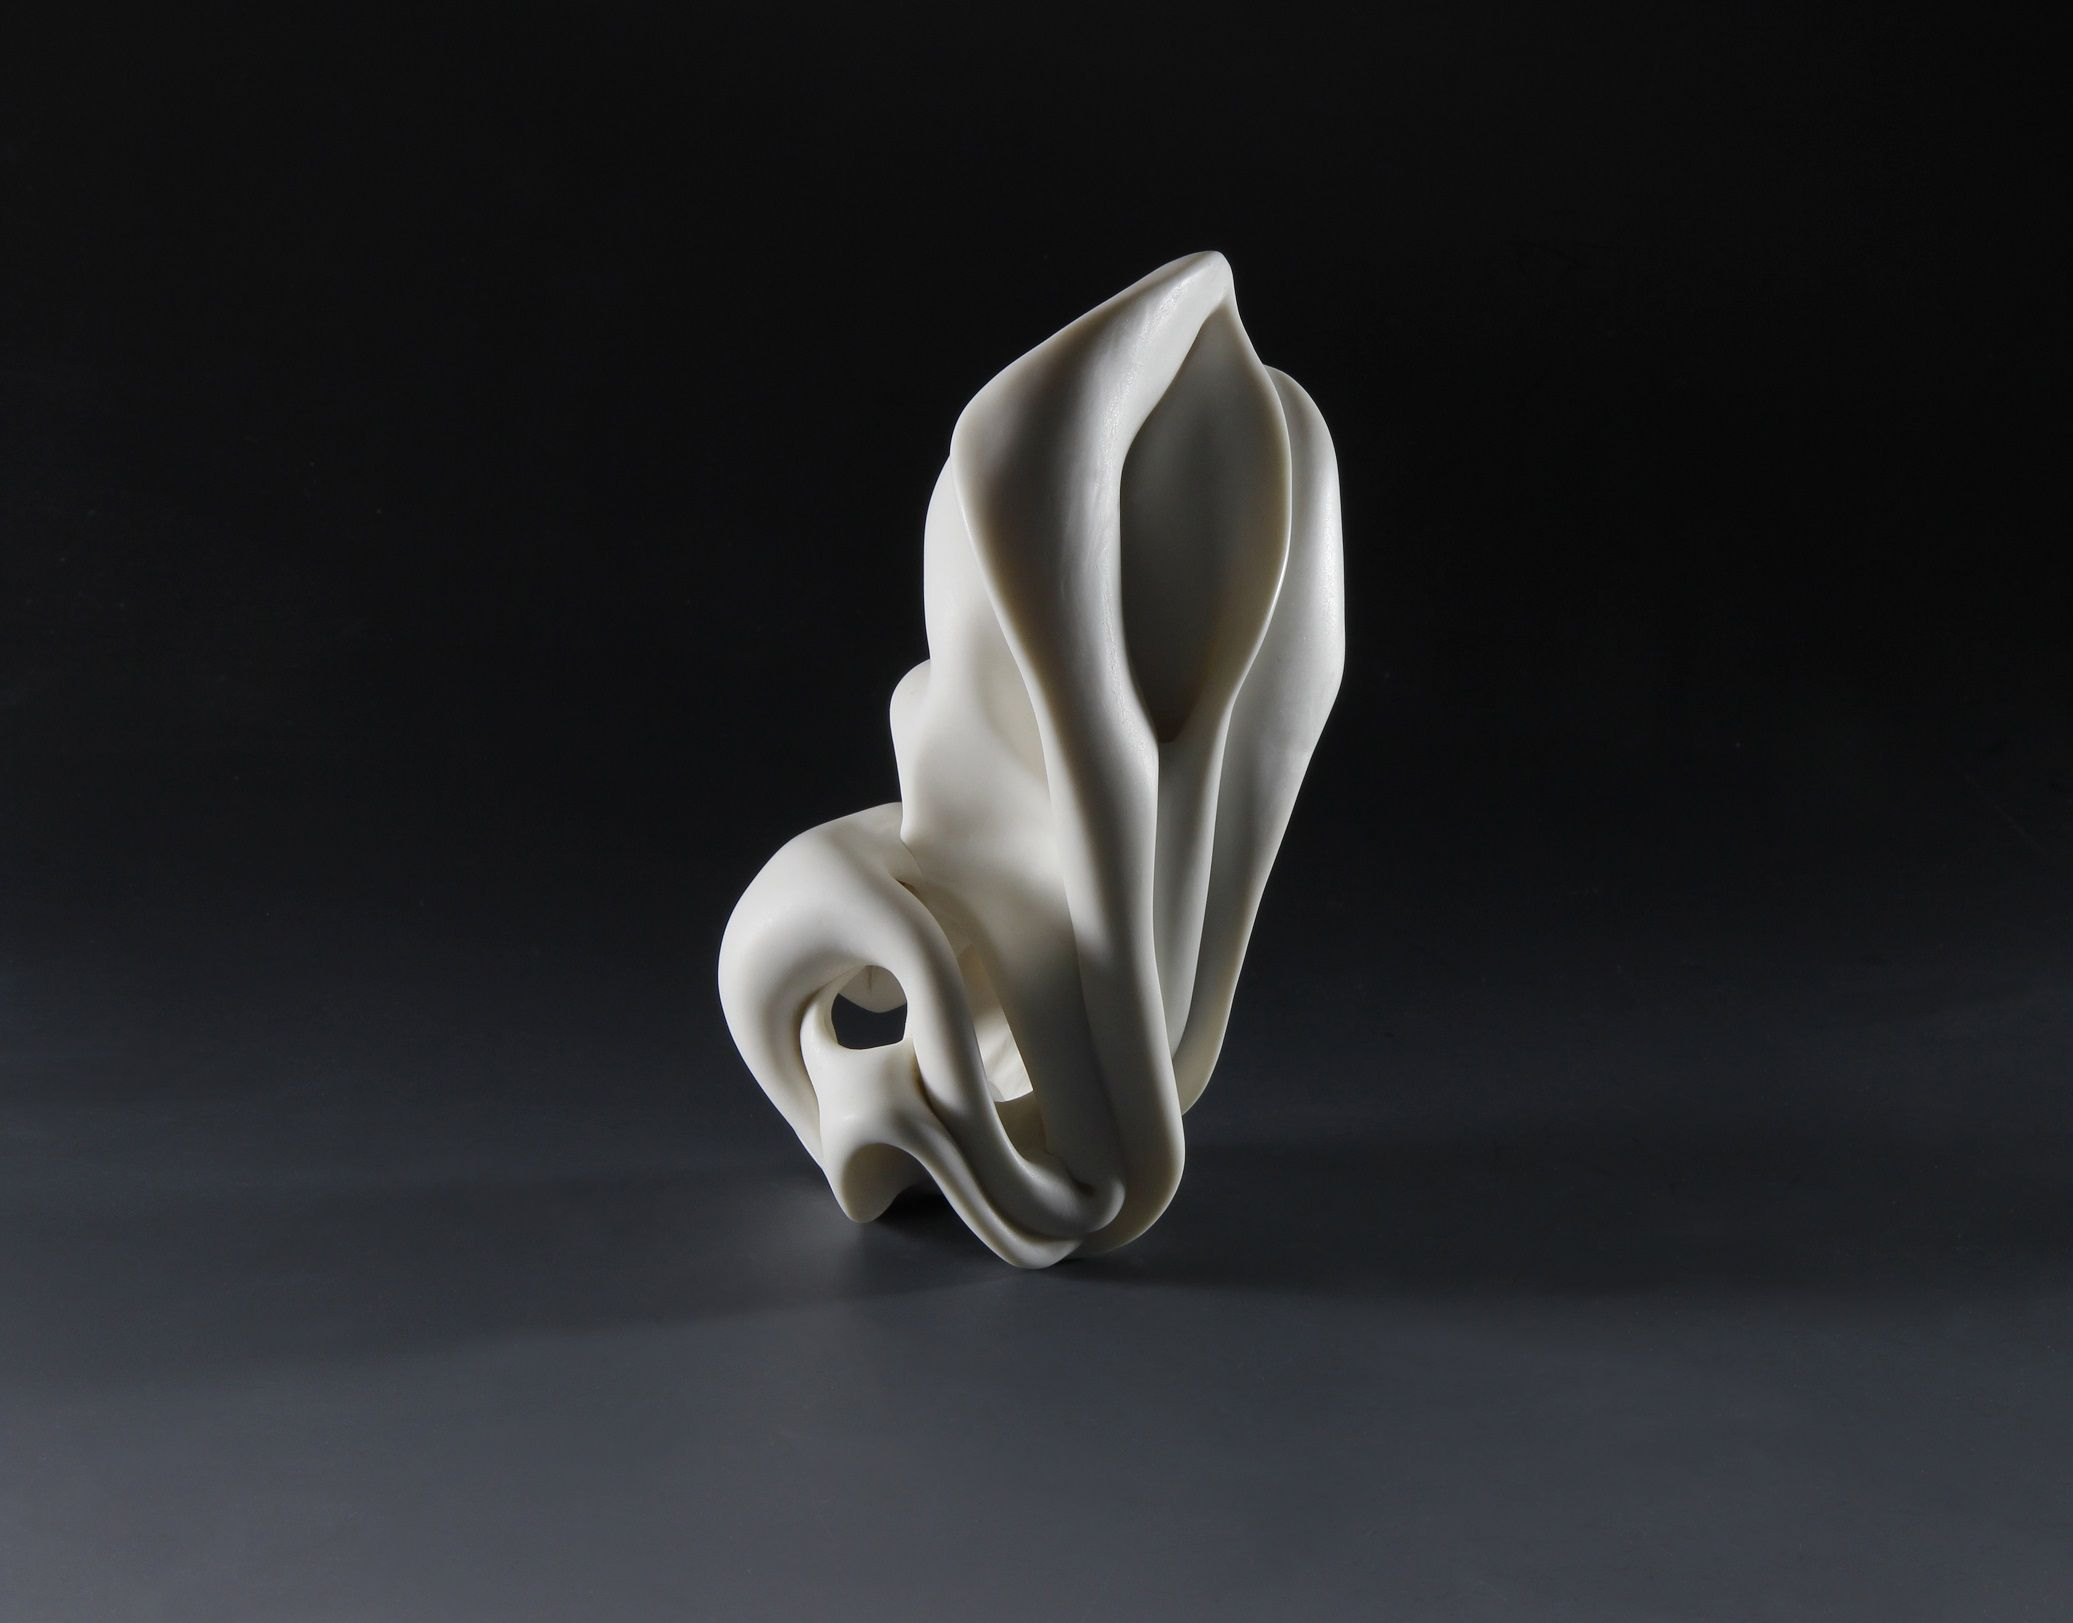 Wing,Sharon Brill,Sculpture contemporaine